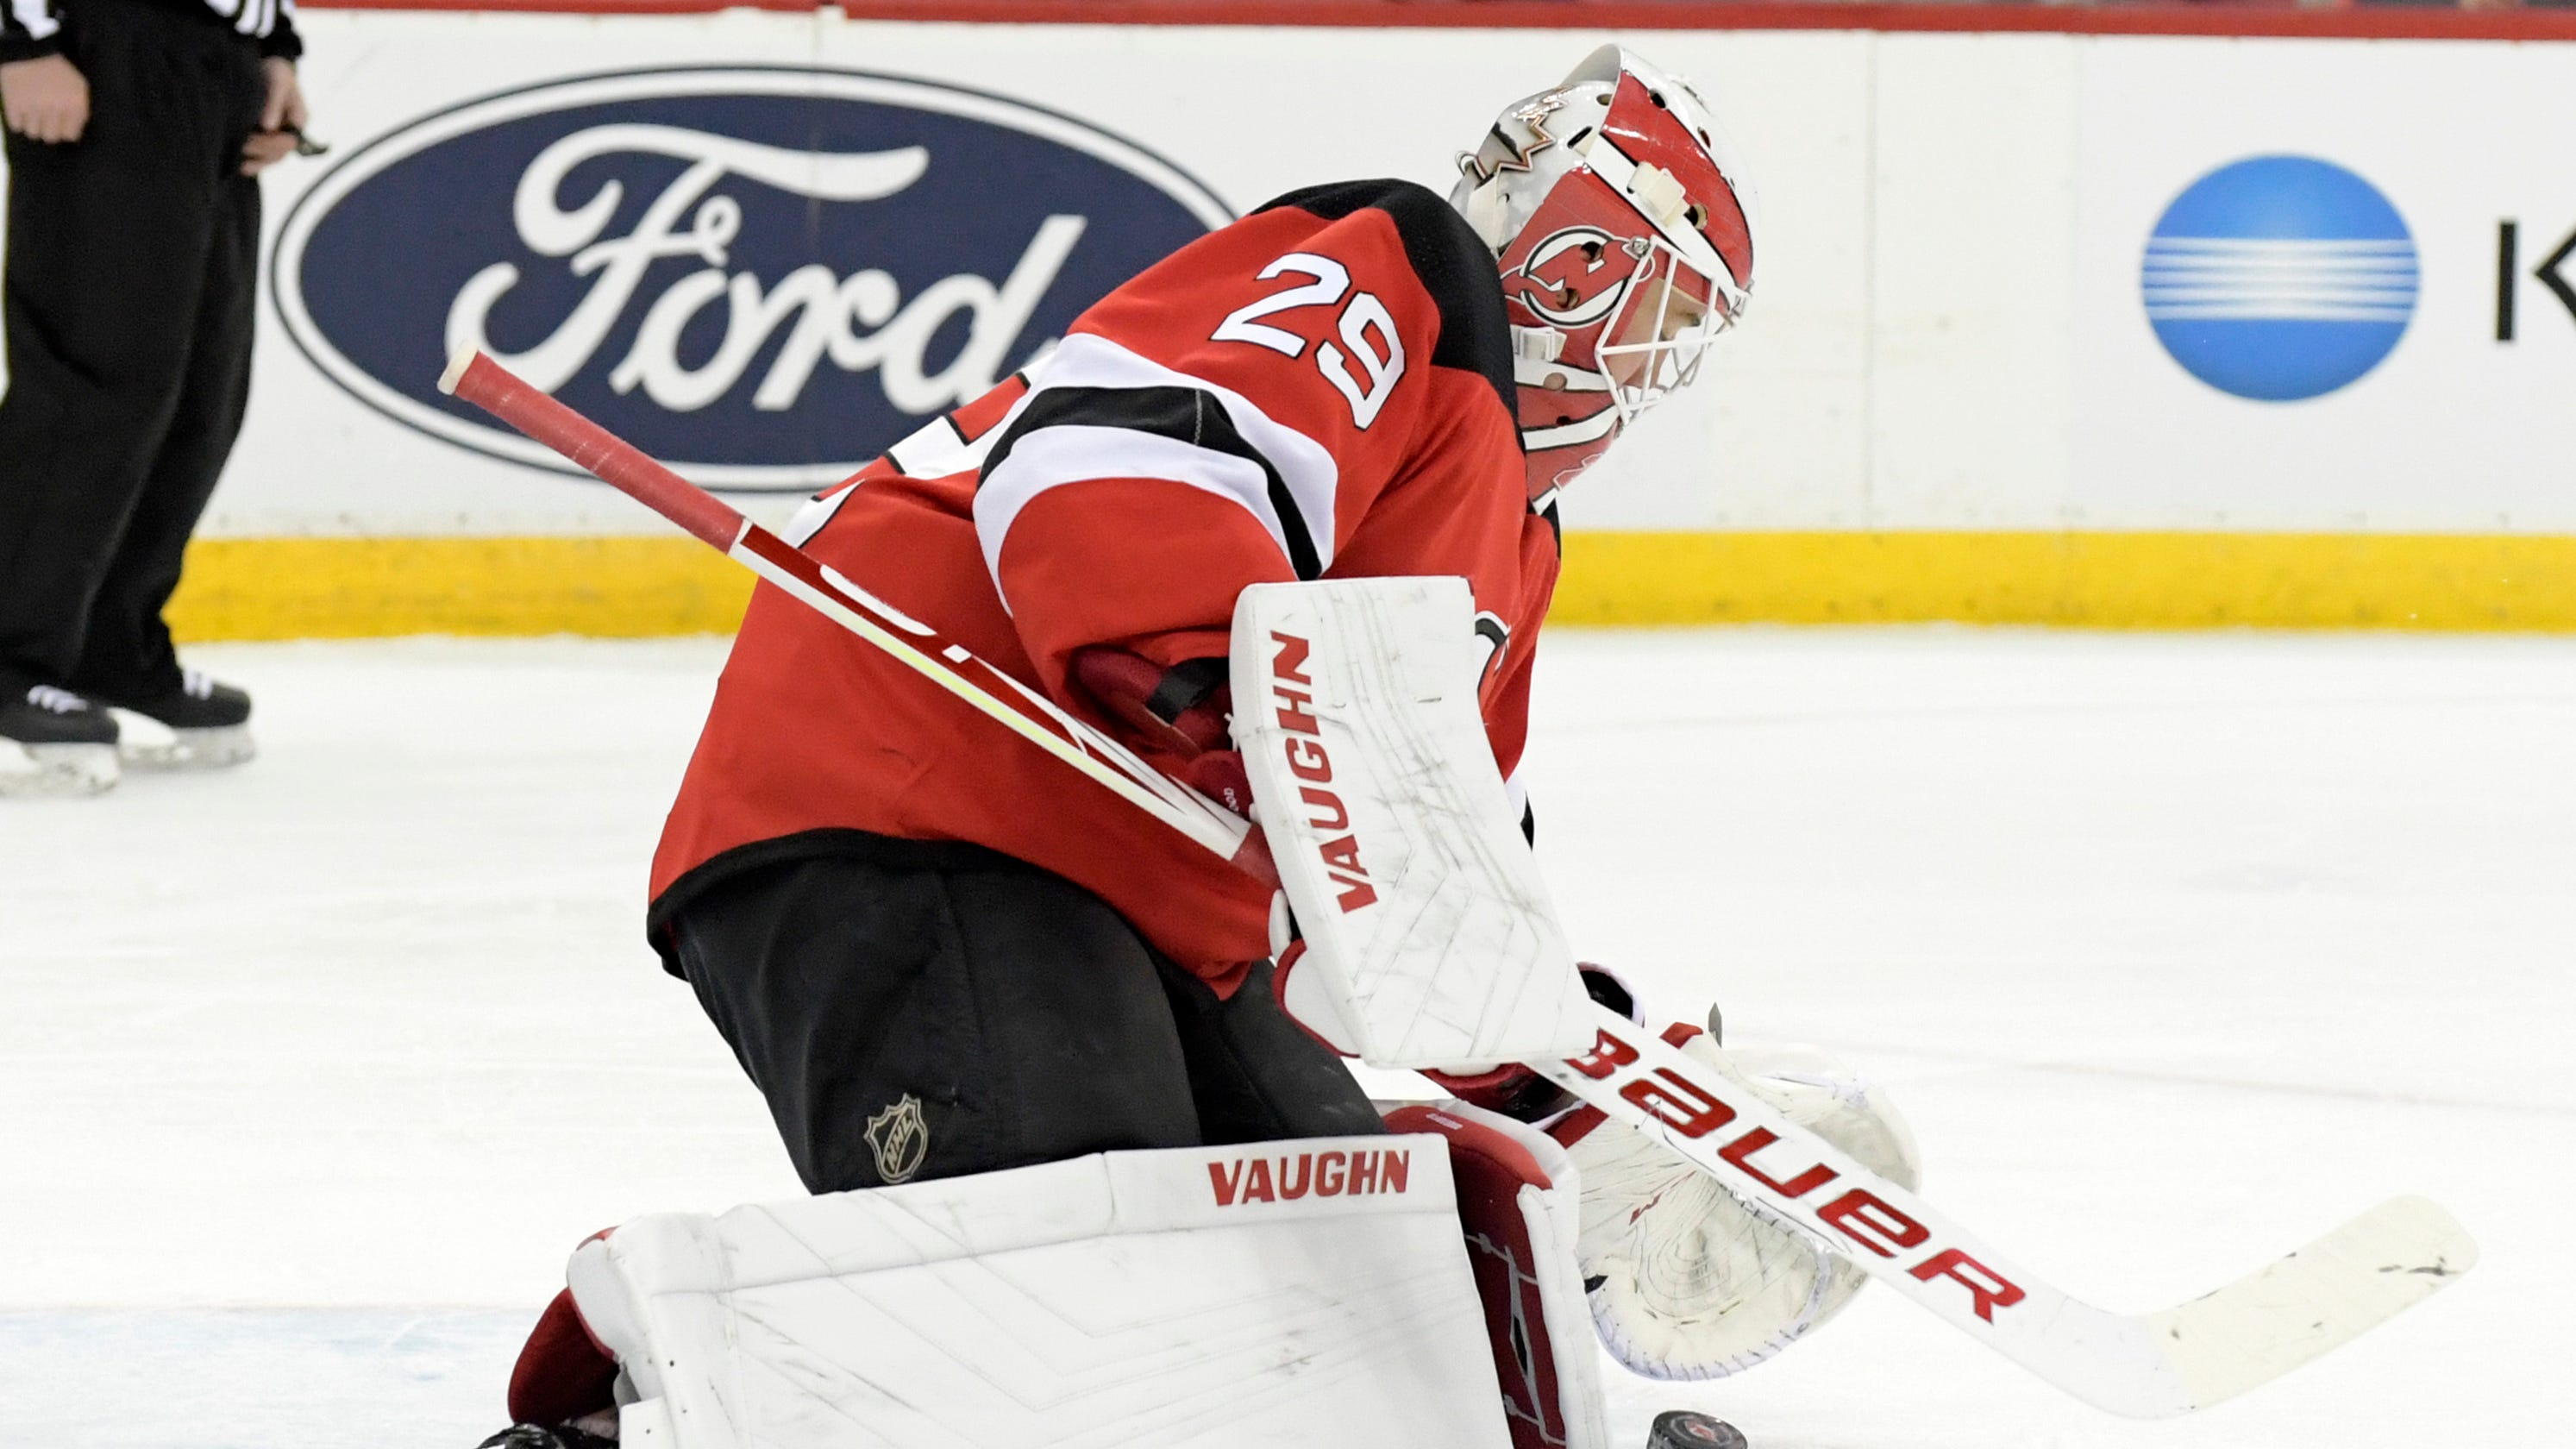 The tough decision for the NJ Devils following 3-0 win over Kings